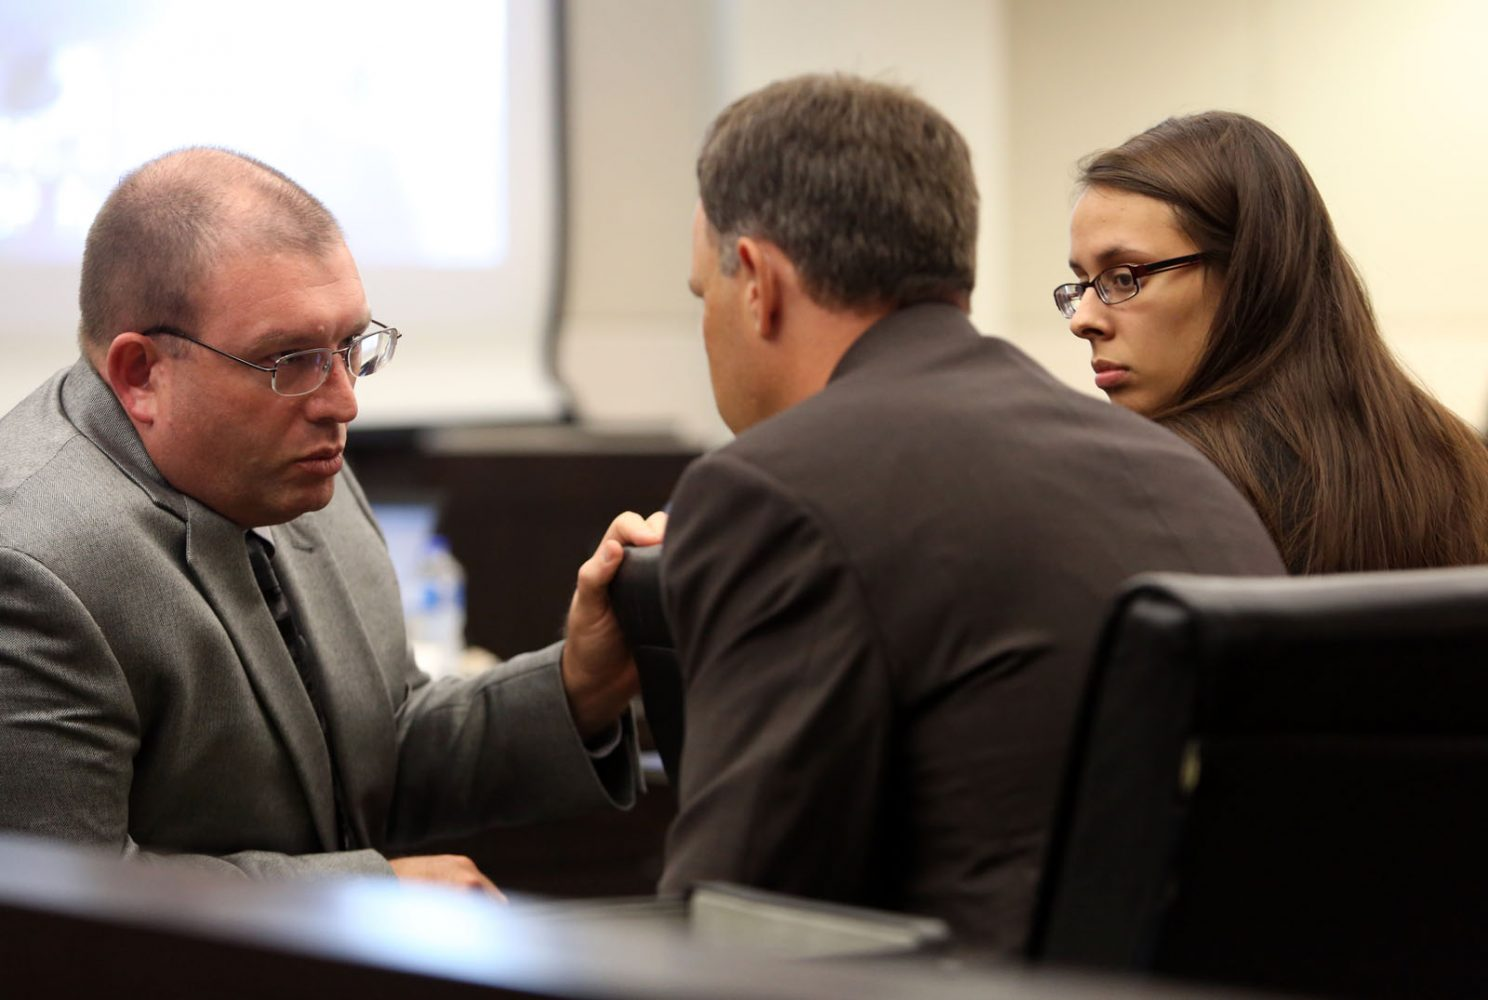 Prosecuting attorney Brian Kramer speaks with assistant state attorney Bill Ezzell and intern Christine Young during Pedro Bravo's murder trial in courtroom 1B of the Alachua County Criminal Justice Center Friday, August 8, 2014.  Bravo is accused of killing University of Florida student Christian Aguilar.  (Doug Finger/The Gainesville Sun/Pool)